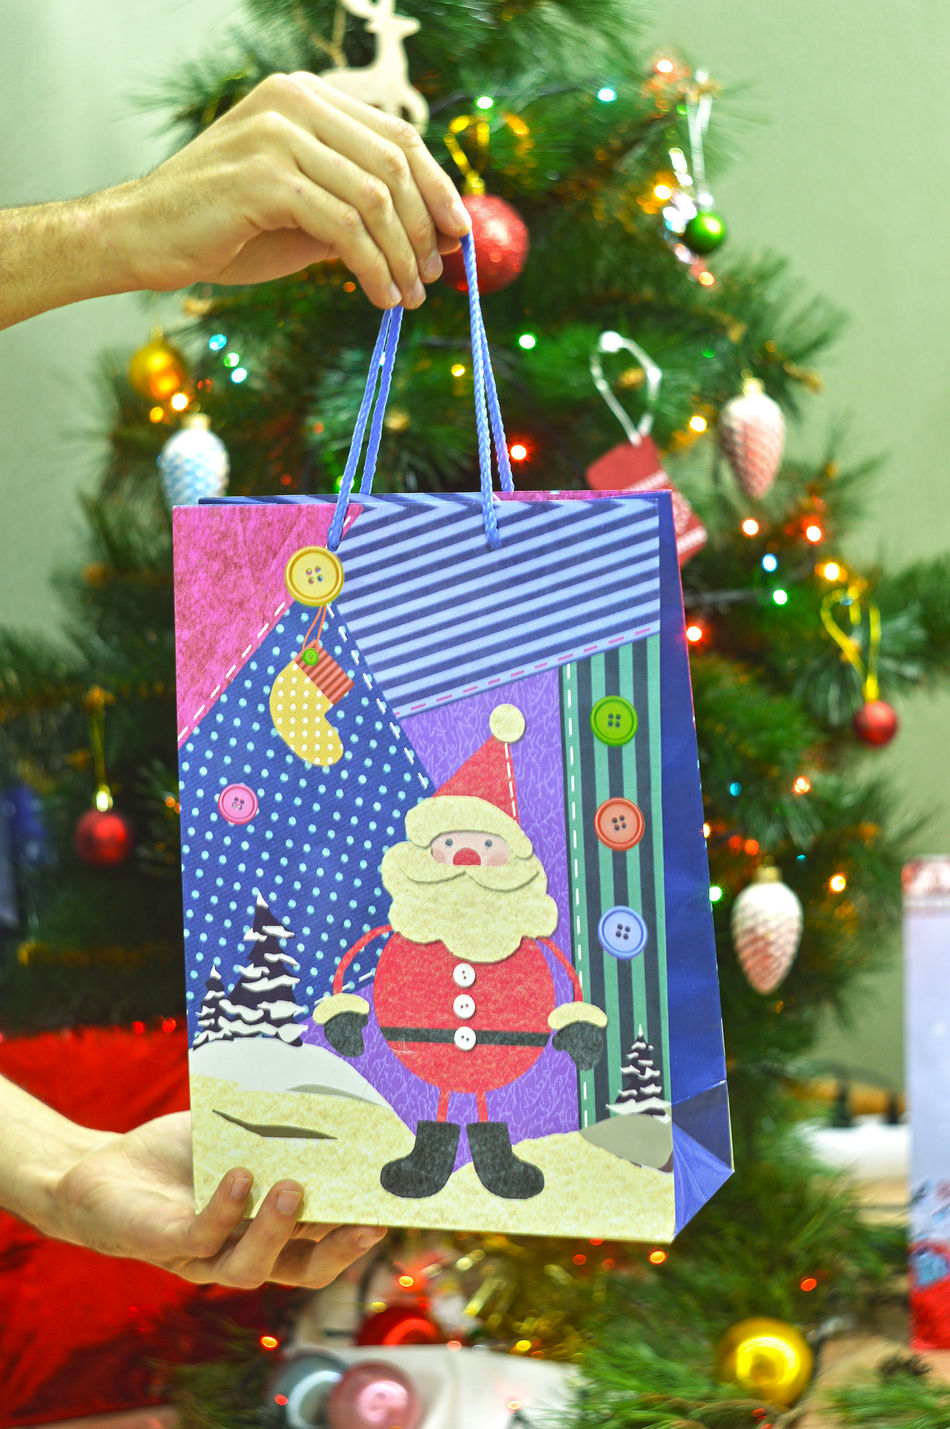 Man holding gift bag on background decorated balls Christmas tree Celebration Child Childhood Children Only Christmas Christmas Decoration Christmas Lights Christmas Ornament Christmas Present Christmas Tree Close-up Day Focus On Foreground Gift Holiday - Event Indoors  One Person People Tradition Tree